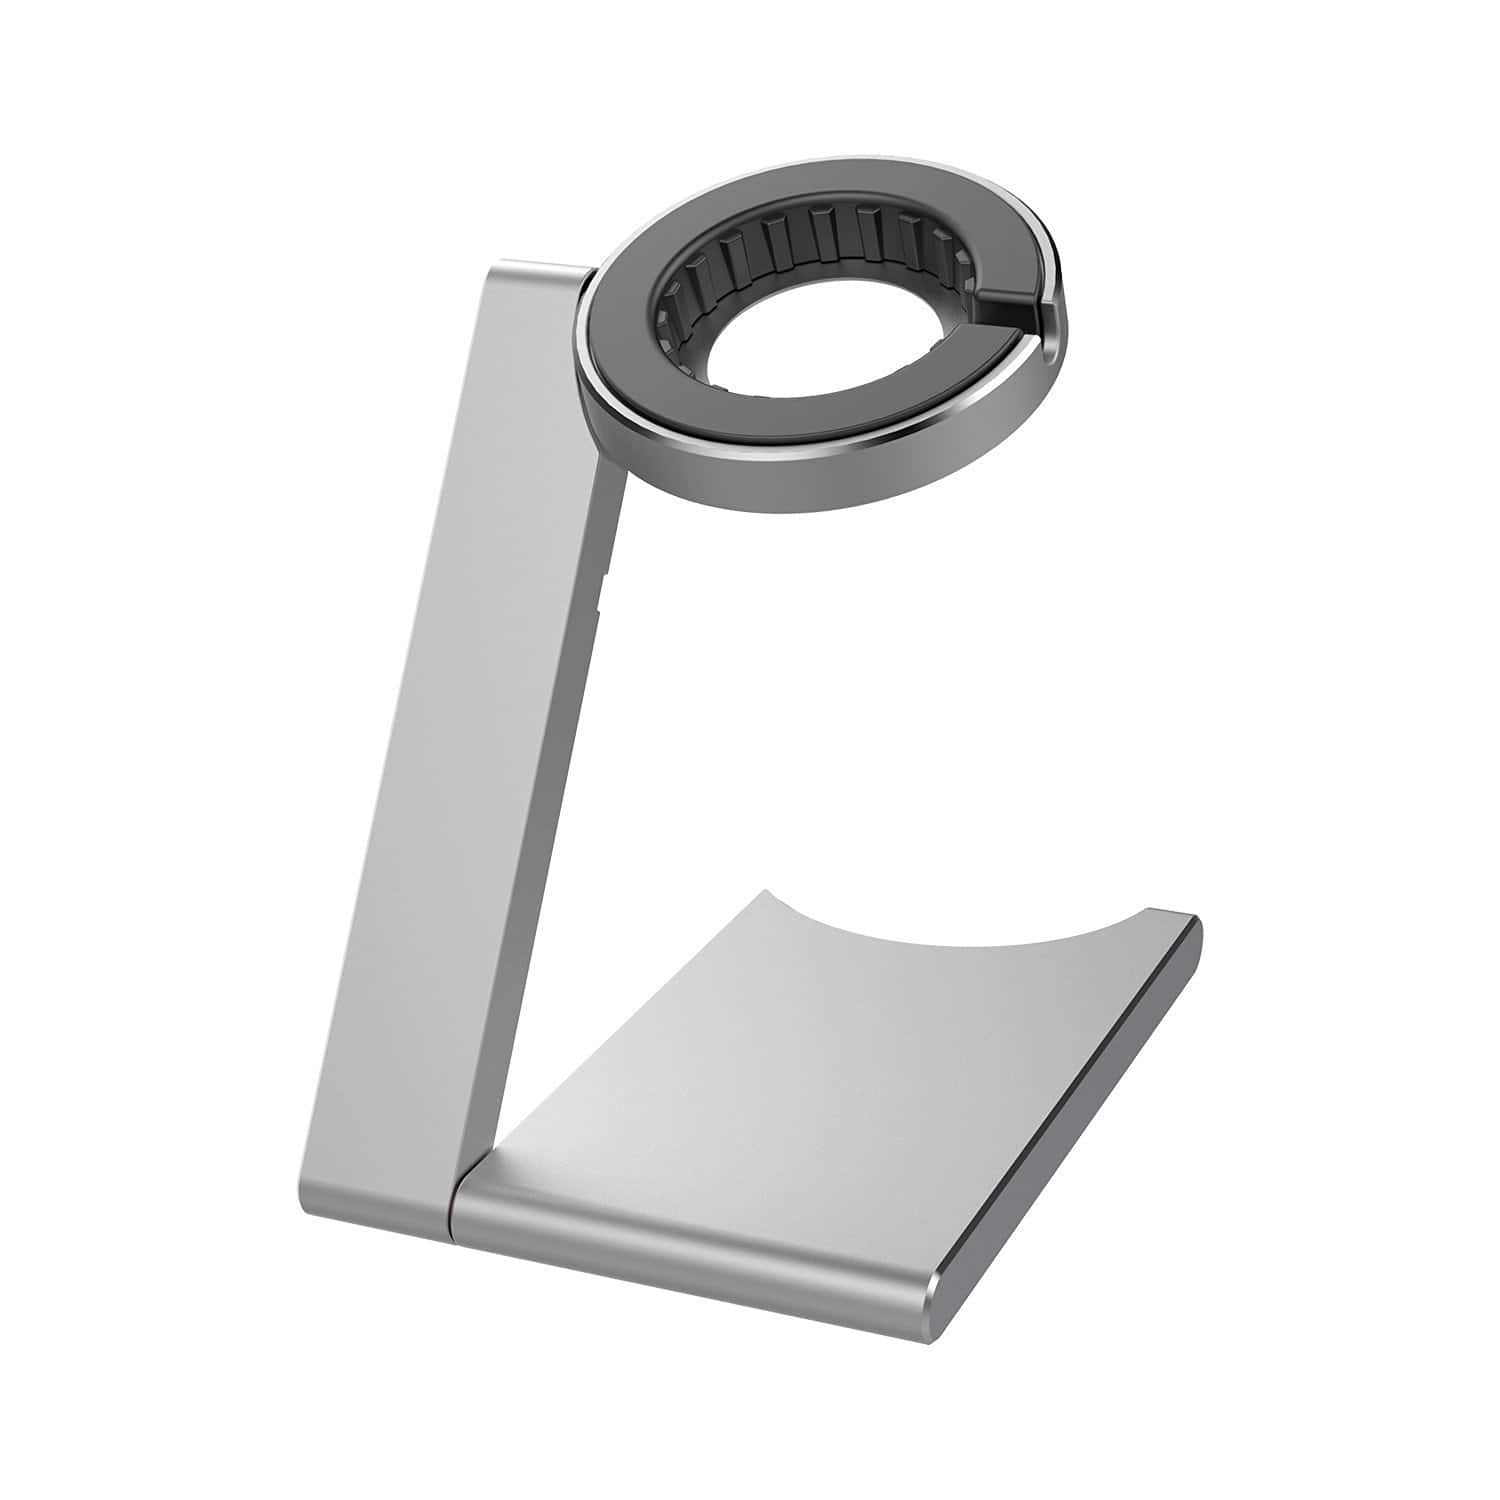 iClever Aluminum Foldable Apple Watch Stand w/ Adjustable Viewing Angle for $7.99 AC or iClever Aluminum 45° Angle Apple Watch Stand for $9.99 AC + FSSS or FS w/ Prime @ Amazon.com